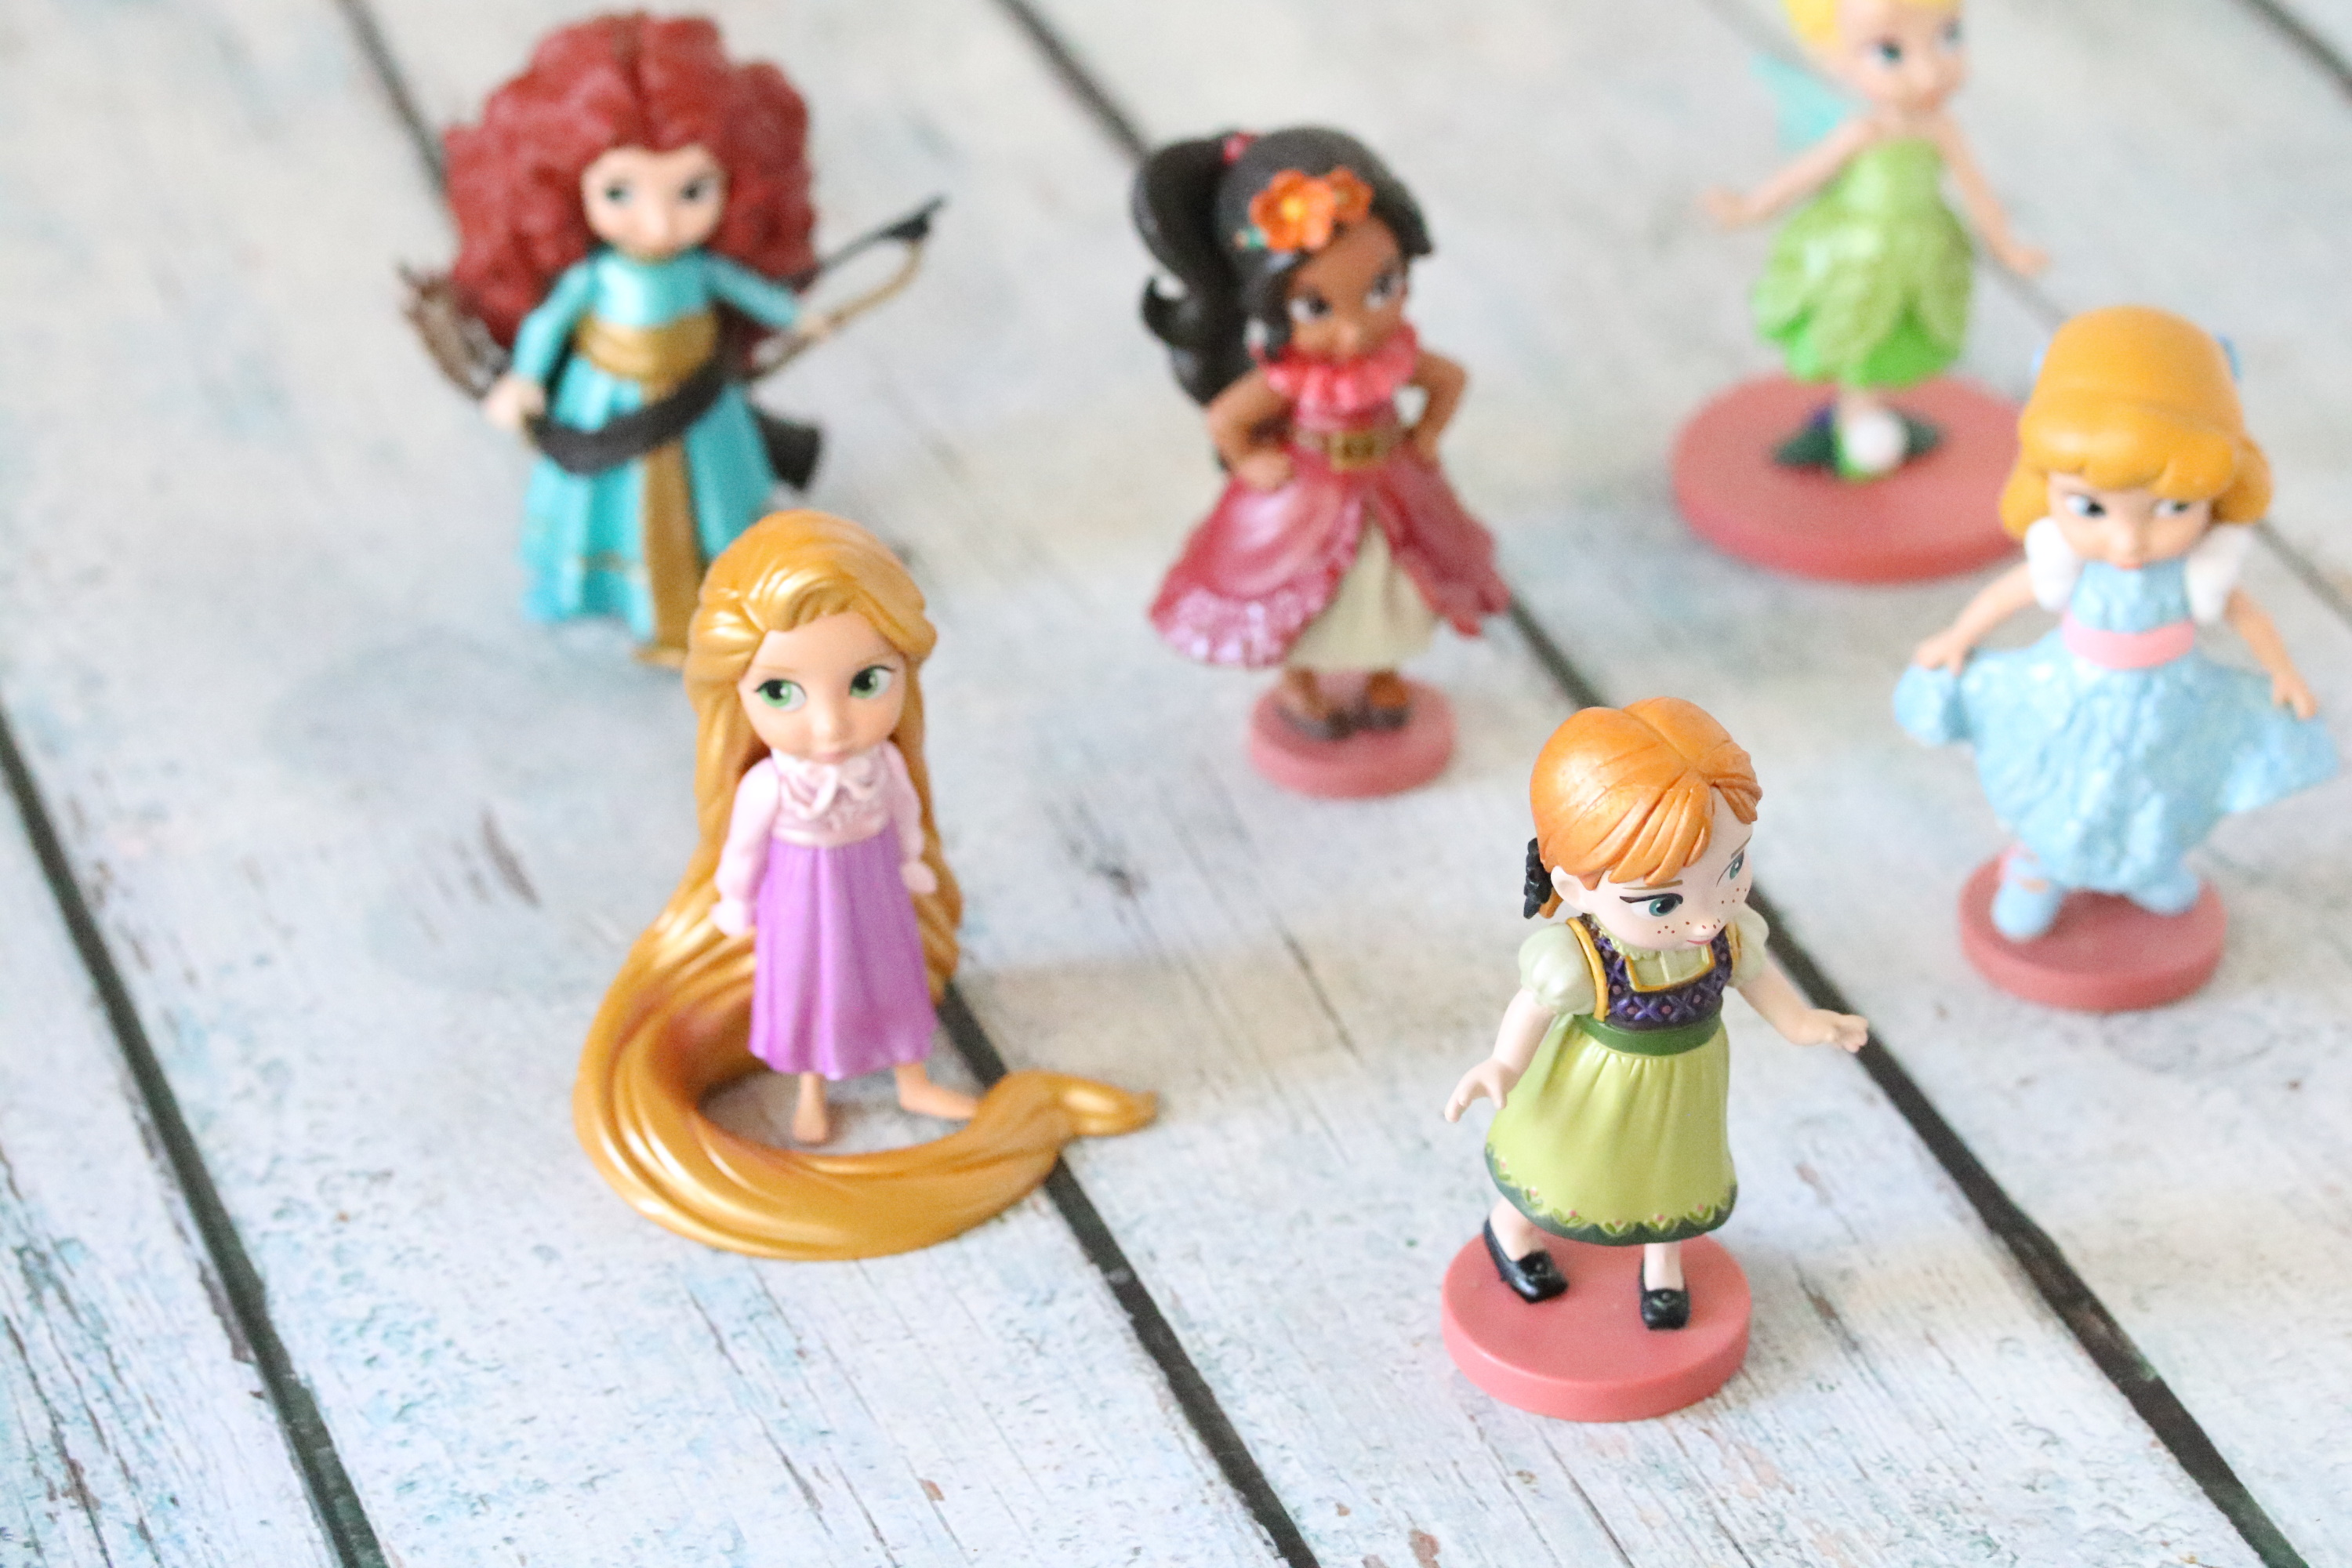 6 Disney princess figurines lined up